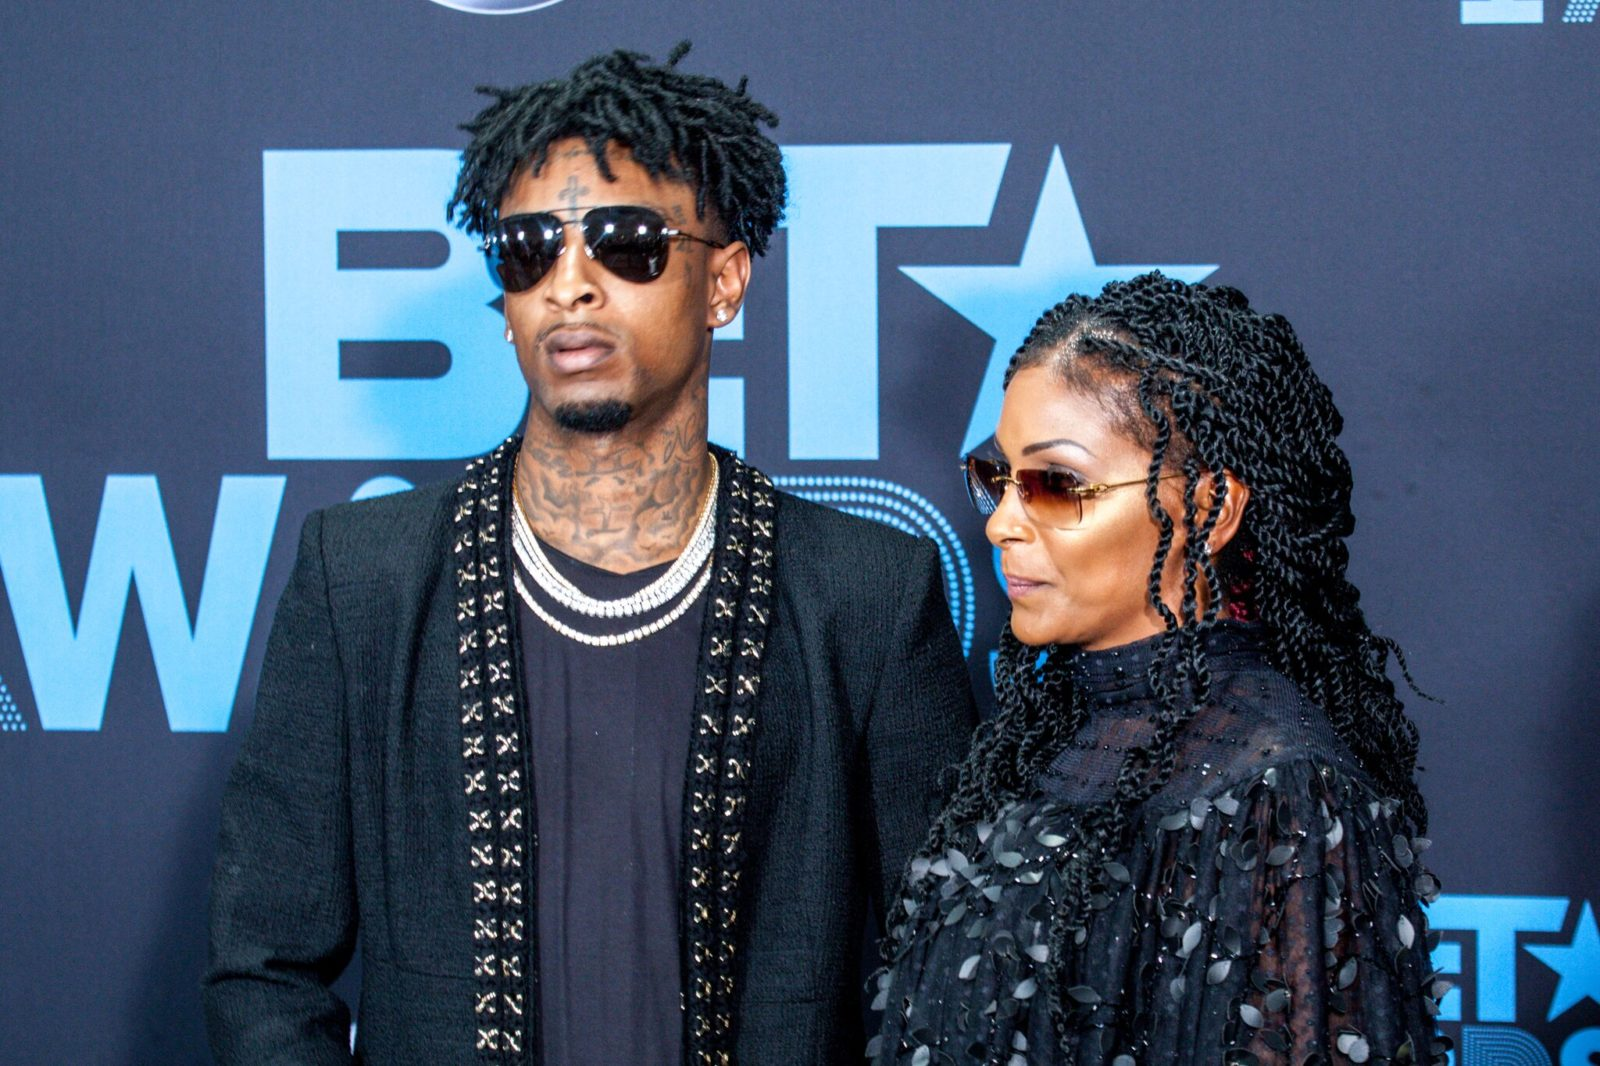 Thanks To Jay Z, Cardi B, J.Cole, Others For My Son's Release – 21 Savage's Mum